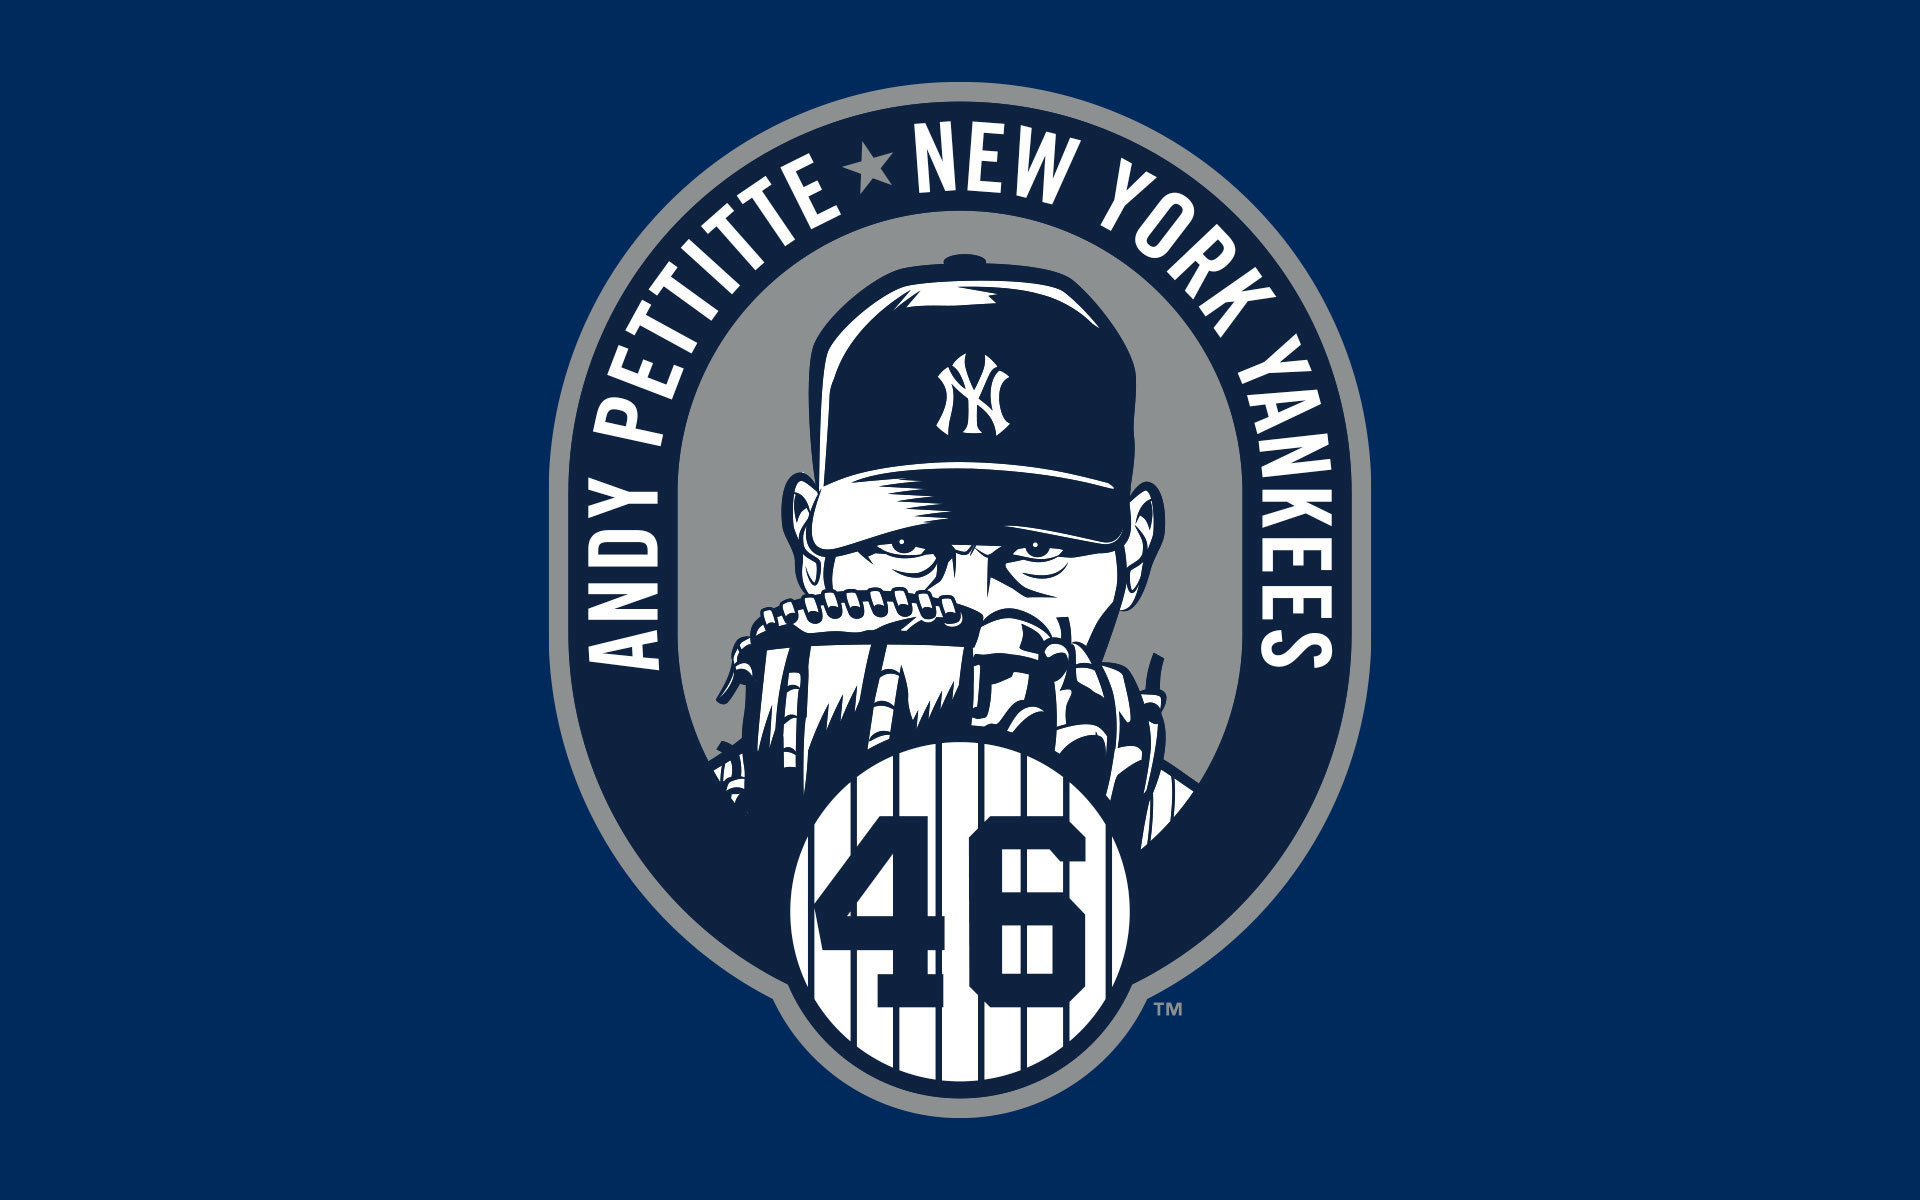 1920x1200 wallpapers wallpapersafari; new york yankees backgrounds wallpapercraft .